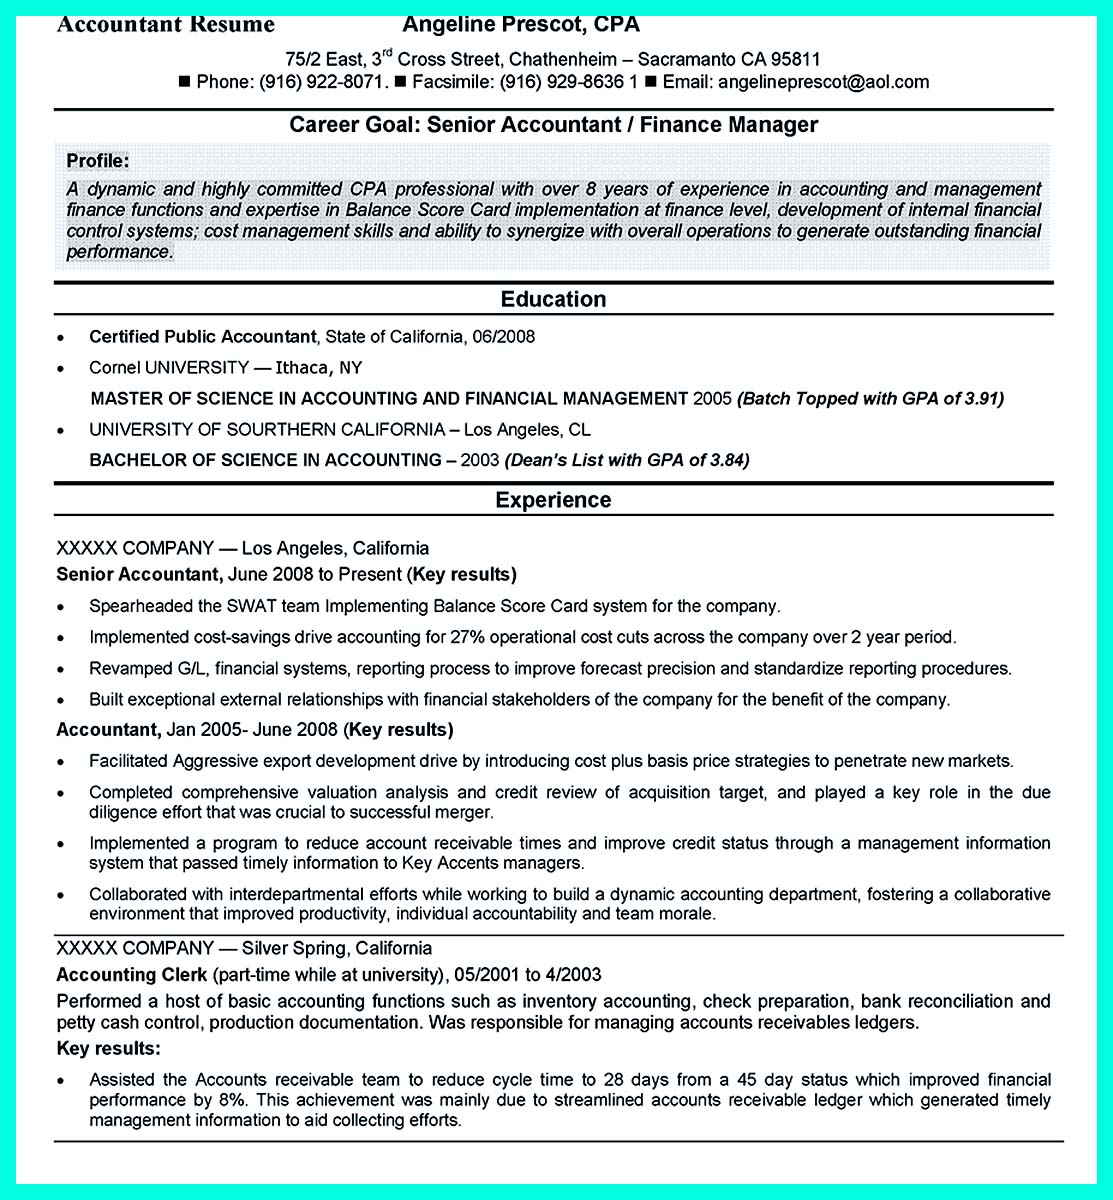 Investment Accountant Resume Quotmention Great And Convincing Skills Quot Said Cna Resume Sample